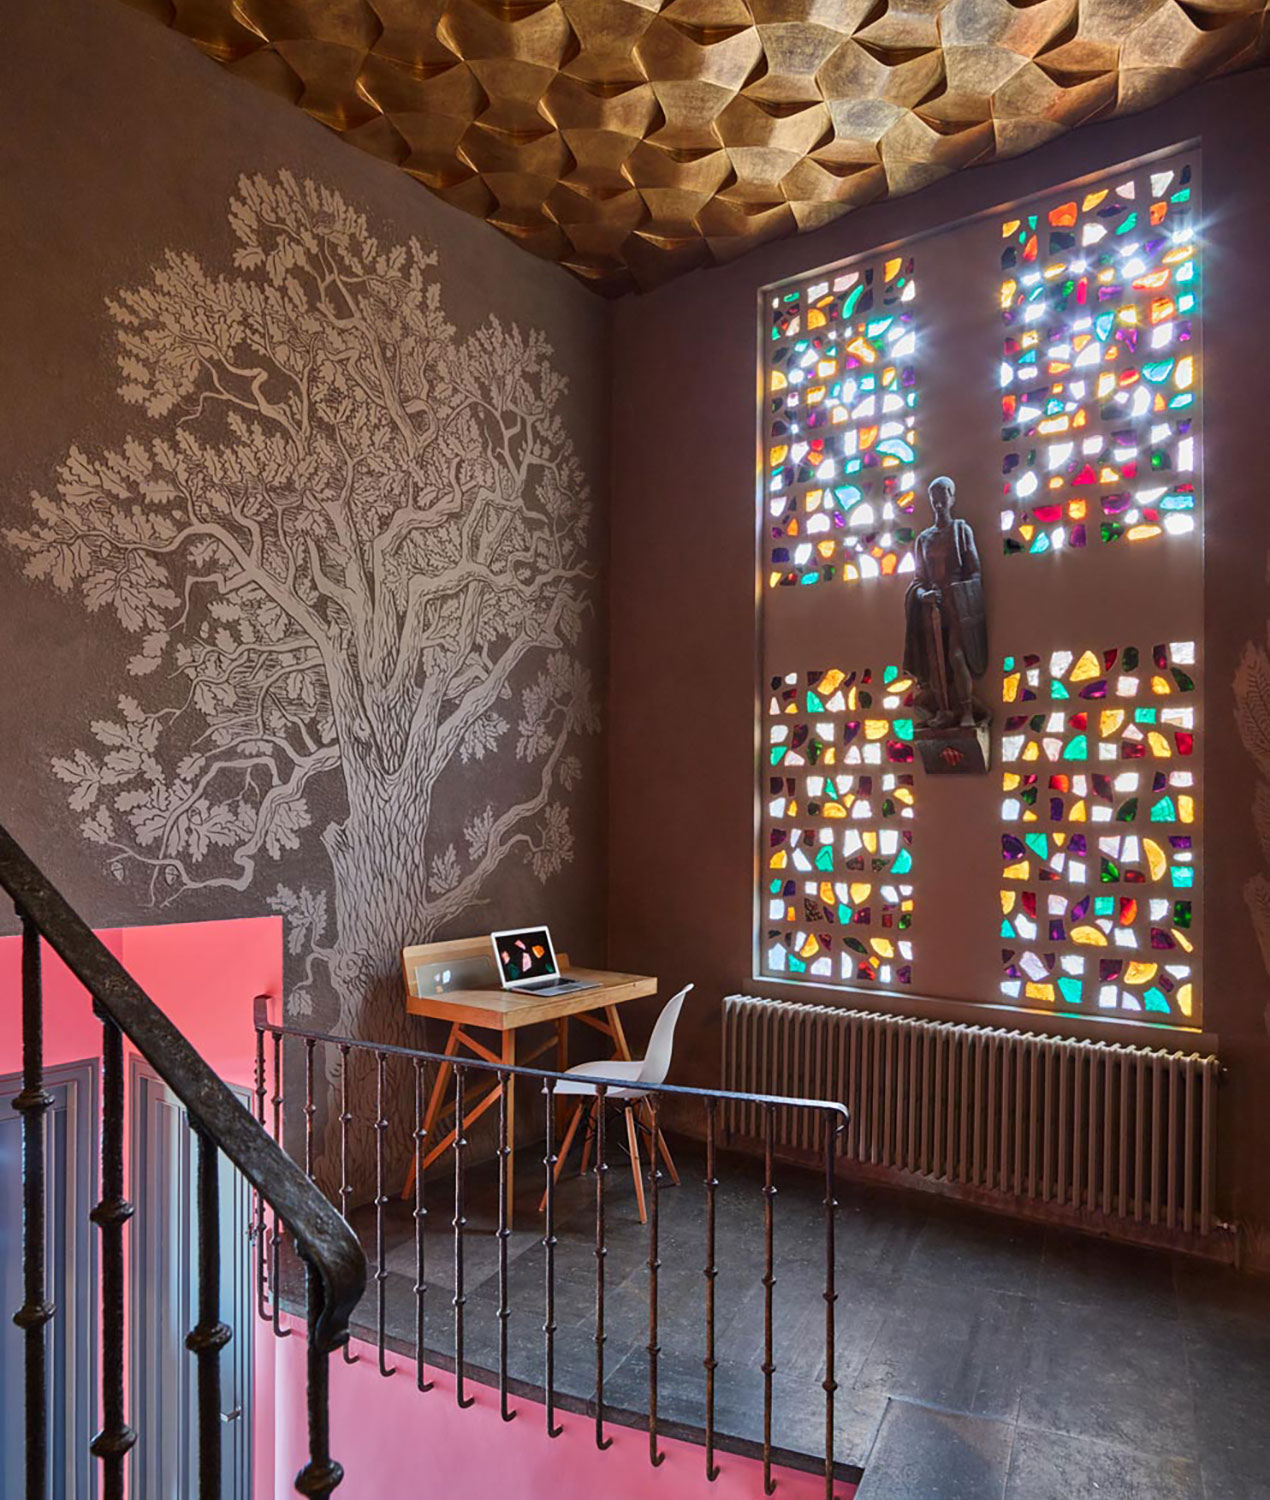 Casa creueta colourful entrance hall with stained glass windows and etched wall art